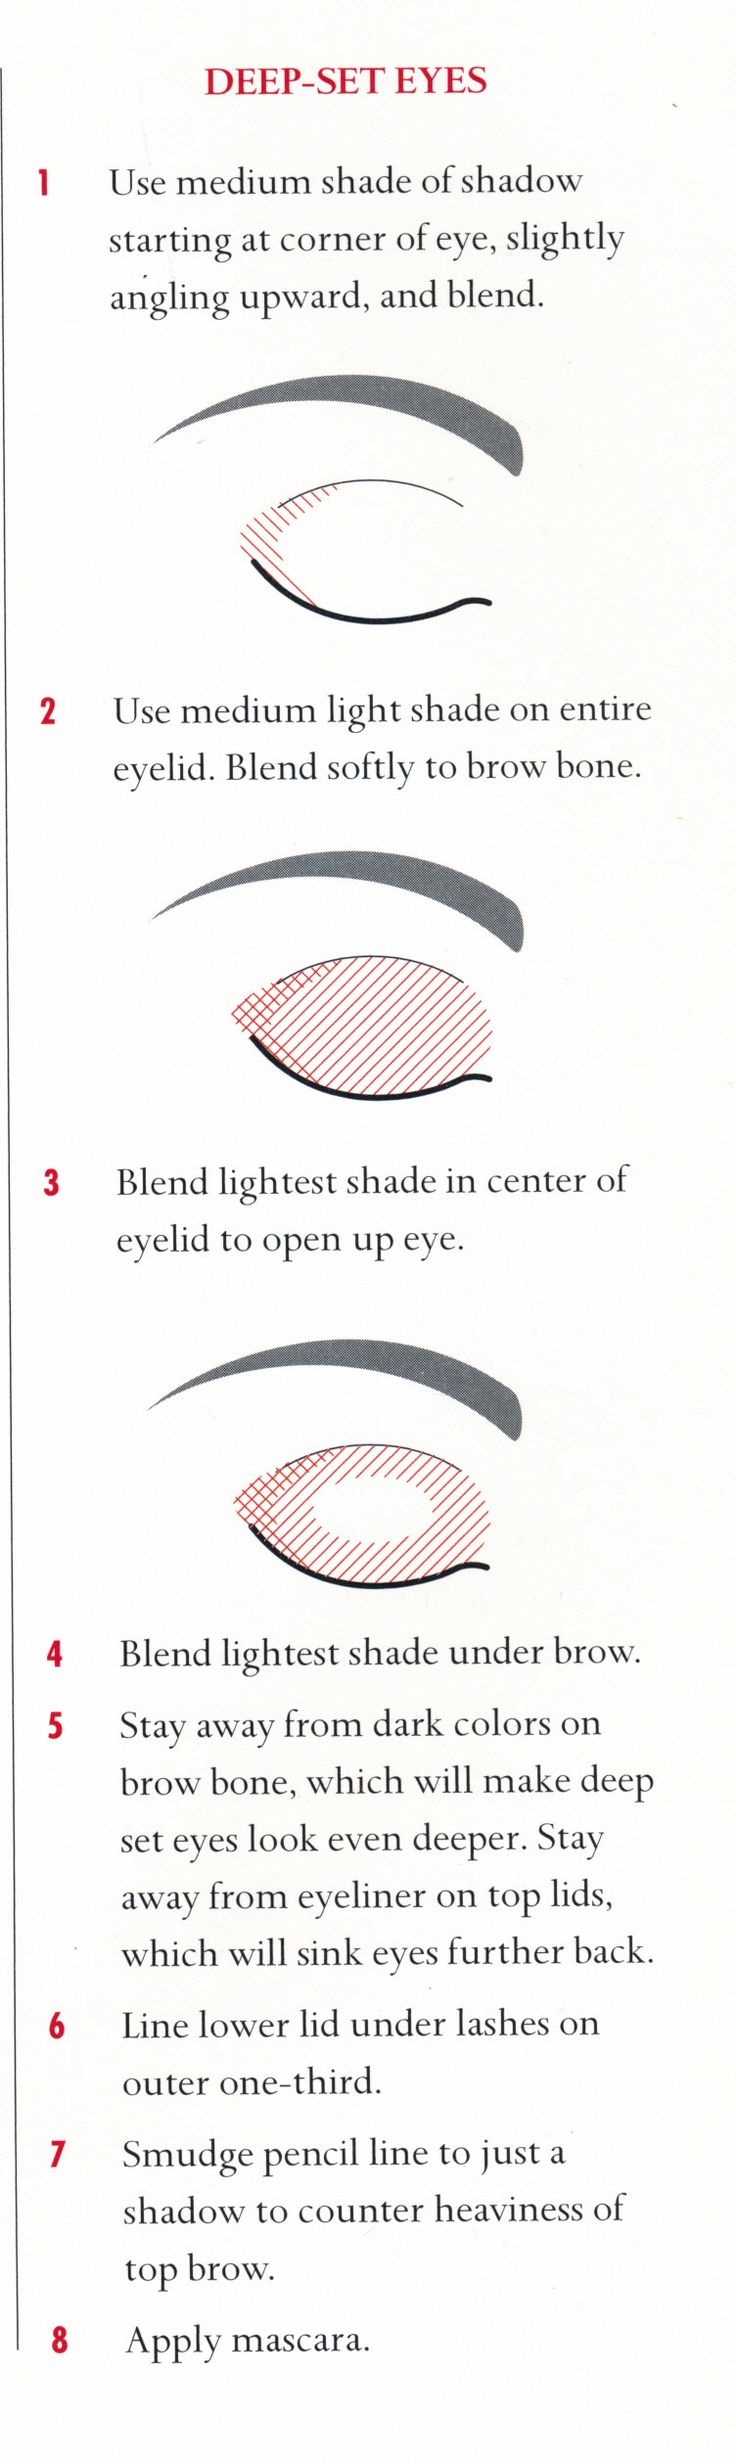 Eye make up for deep set eyes- this is really informative! Just follow the steps, be patient and practice